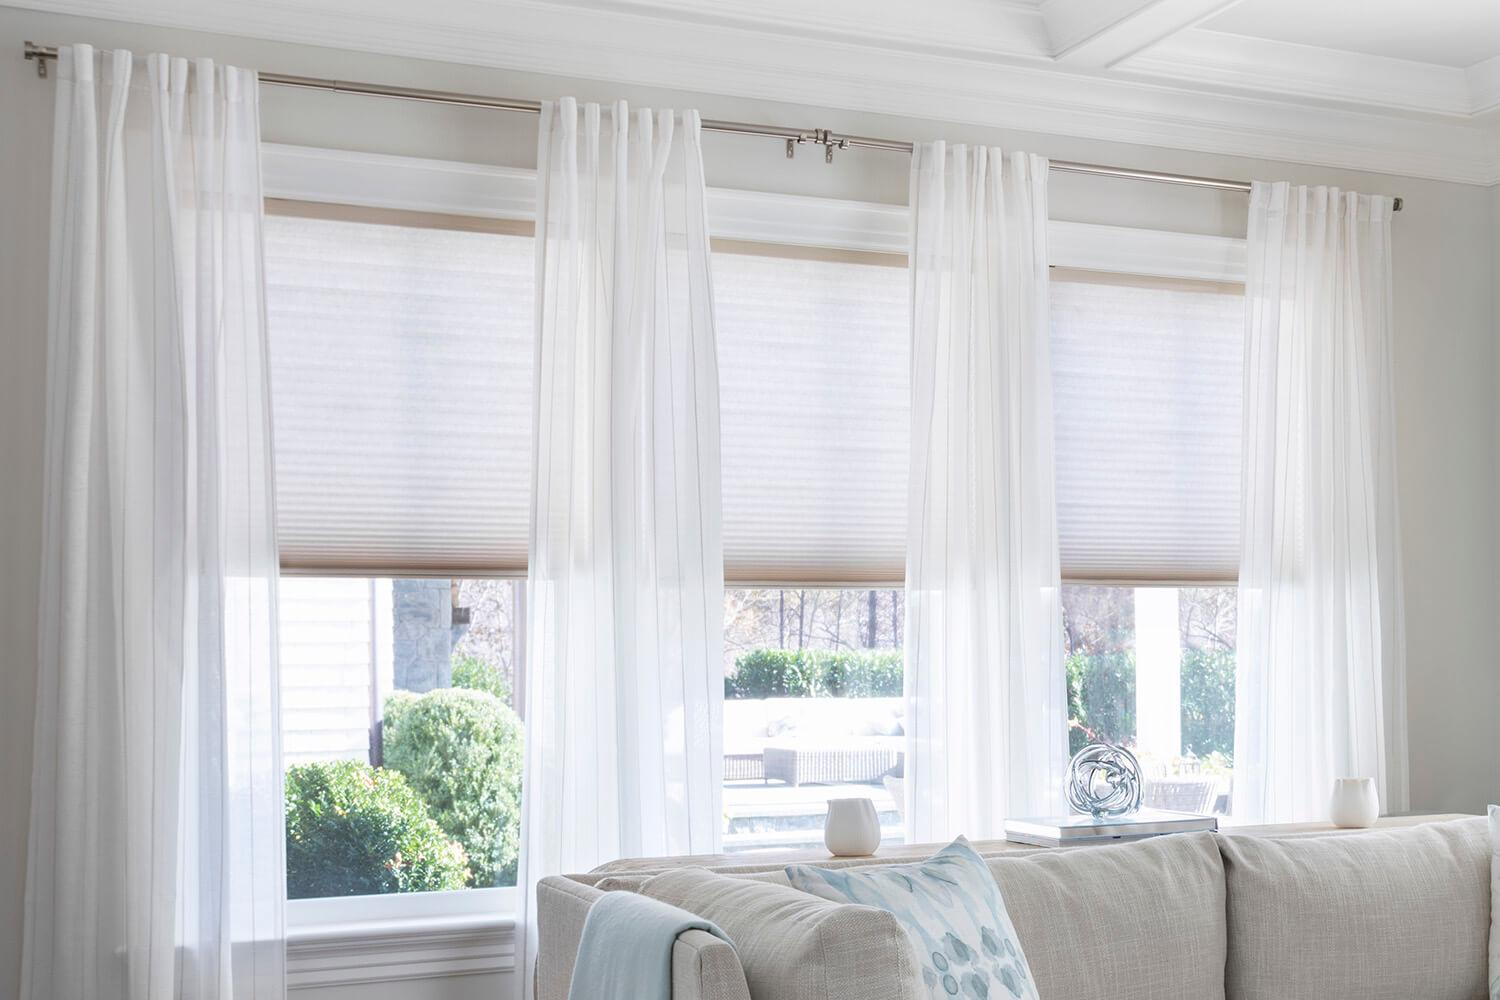 Showcasing drapery in combination with cascade shades.